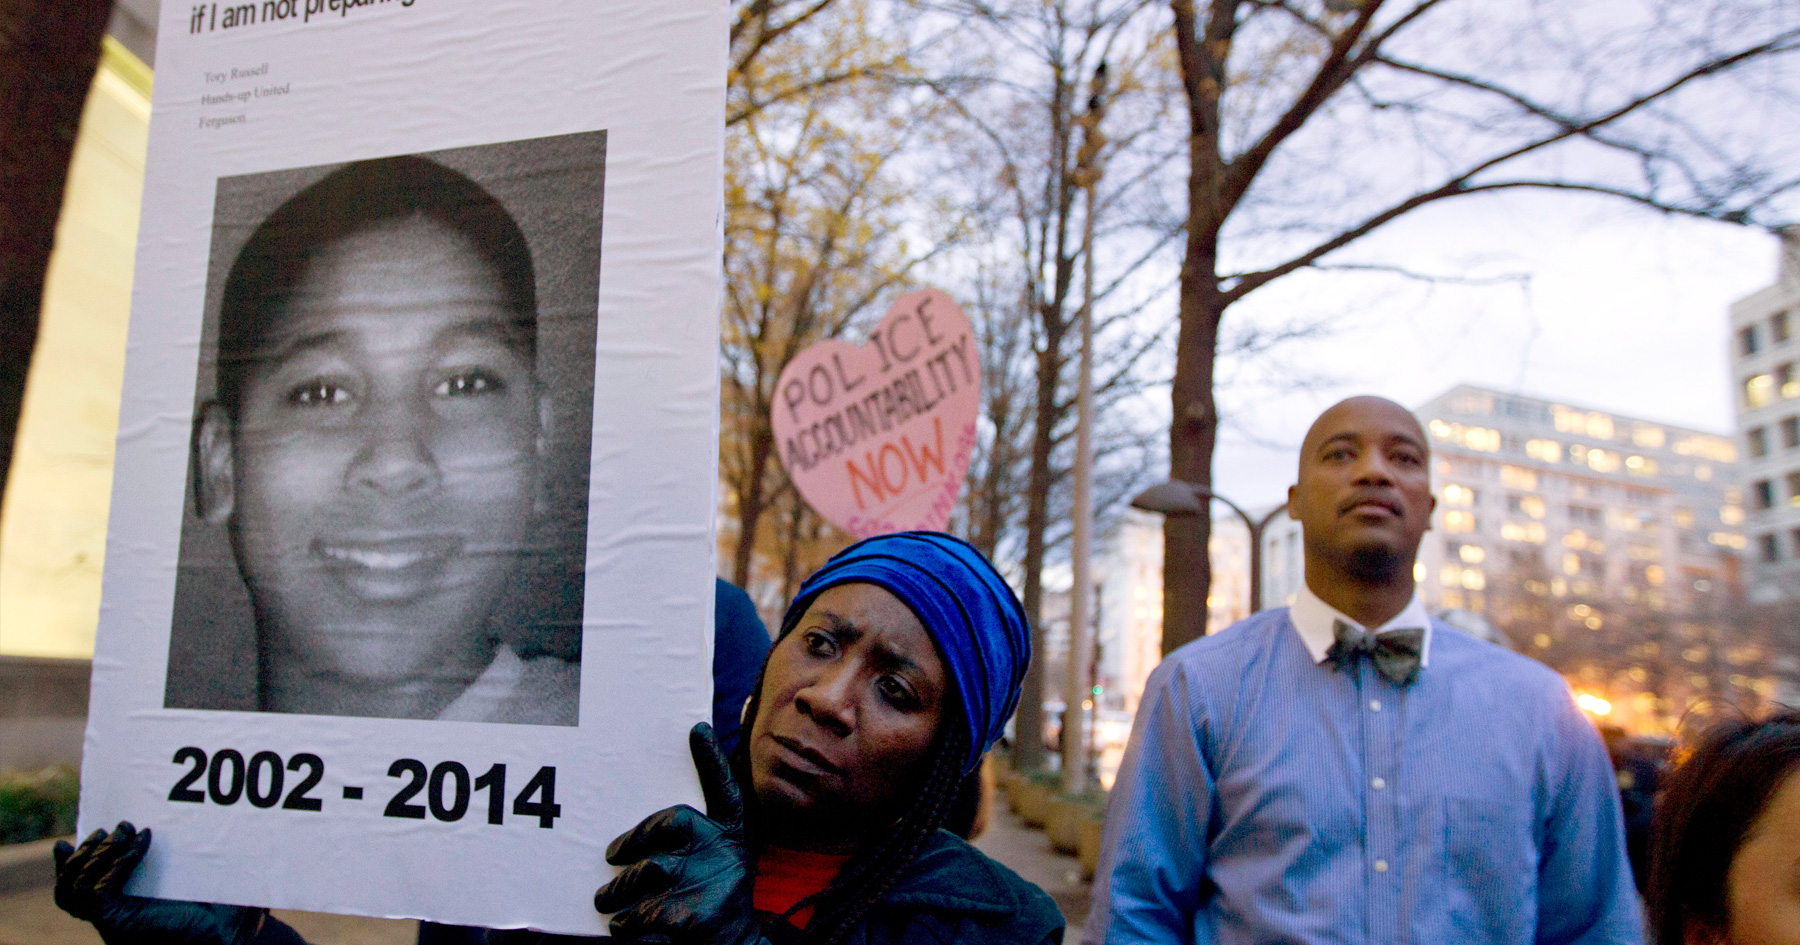 FILE - In a Monday, Dec. 1, 2014 file photo, Tomiko Shine holds up a picture of Tamir Rice, the 12 year old boy fatally shot on Nov. 22 by a rookie police officer, in Cleveland, Ohio, during a protest.